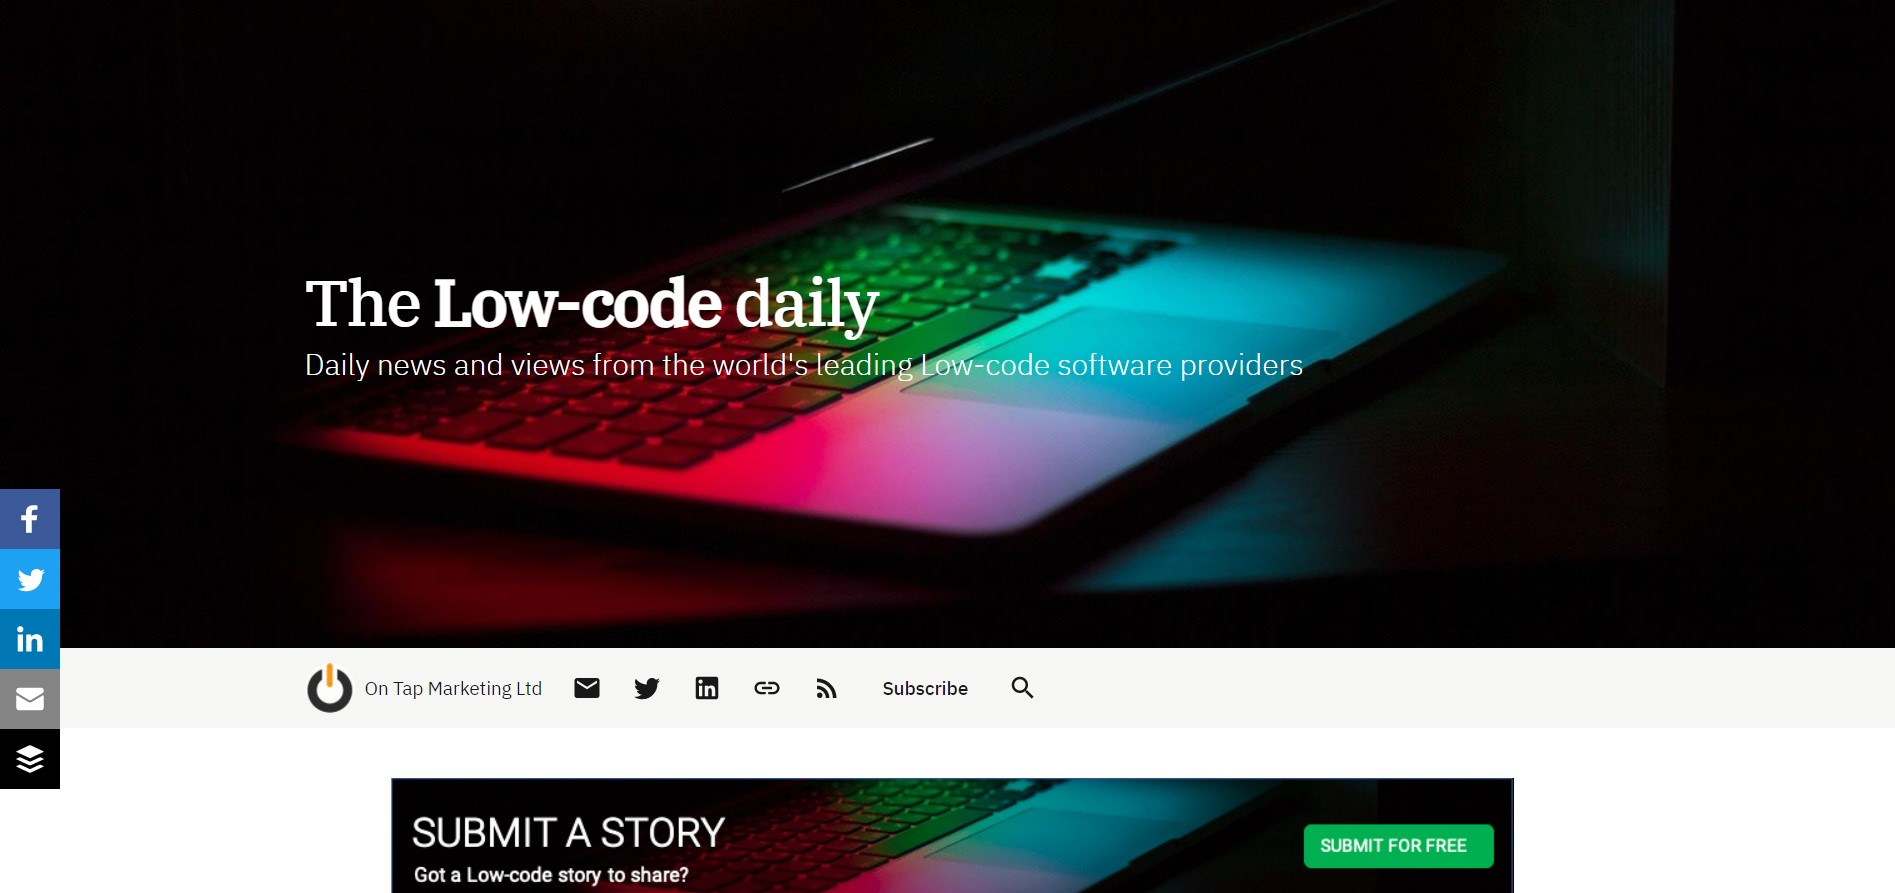 The low-code daily